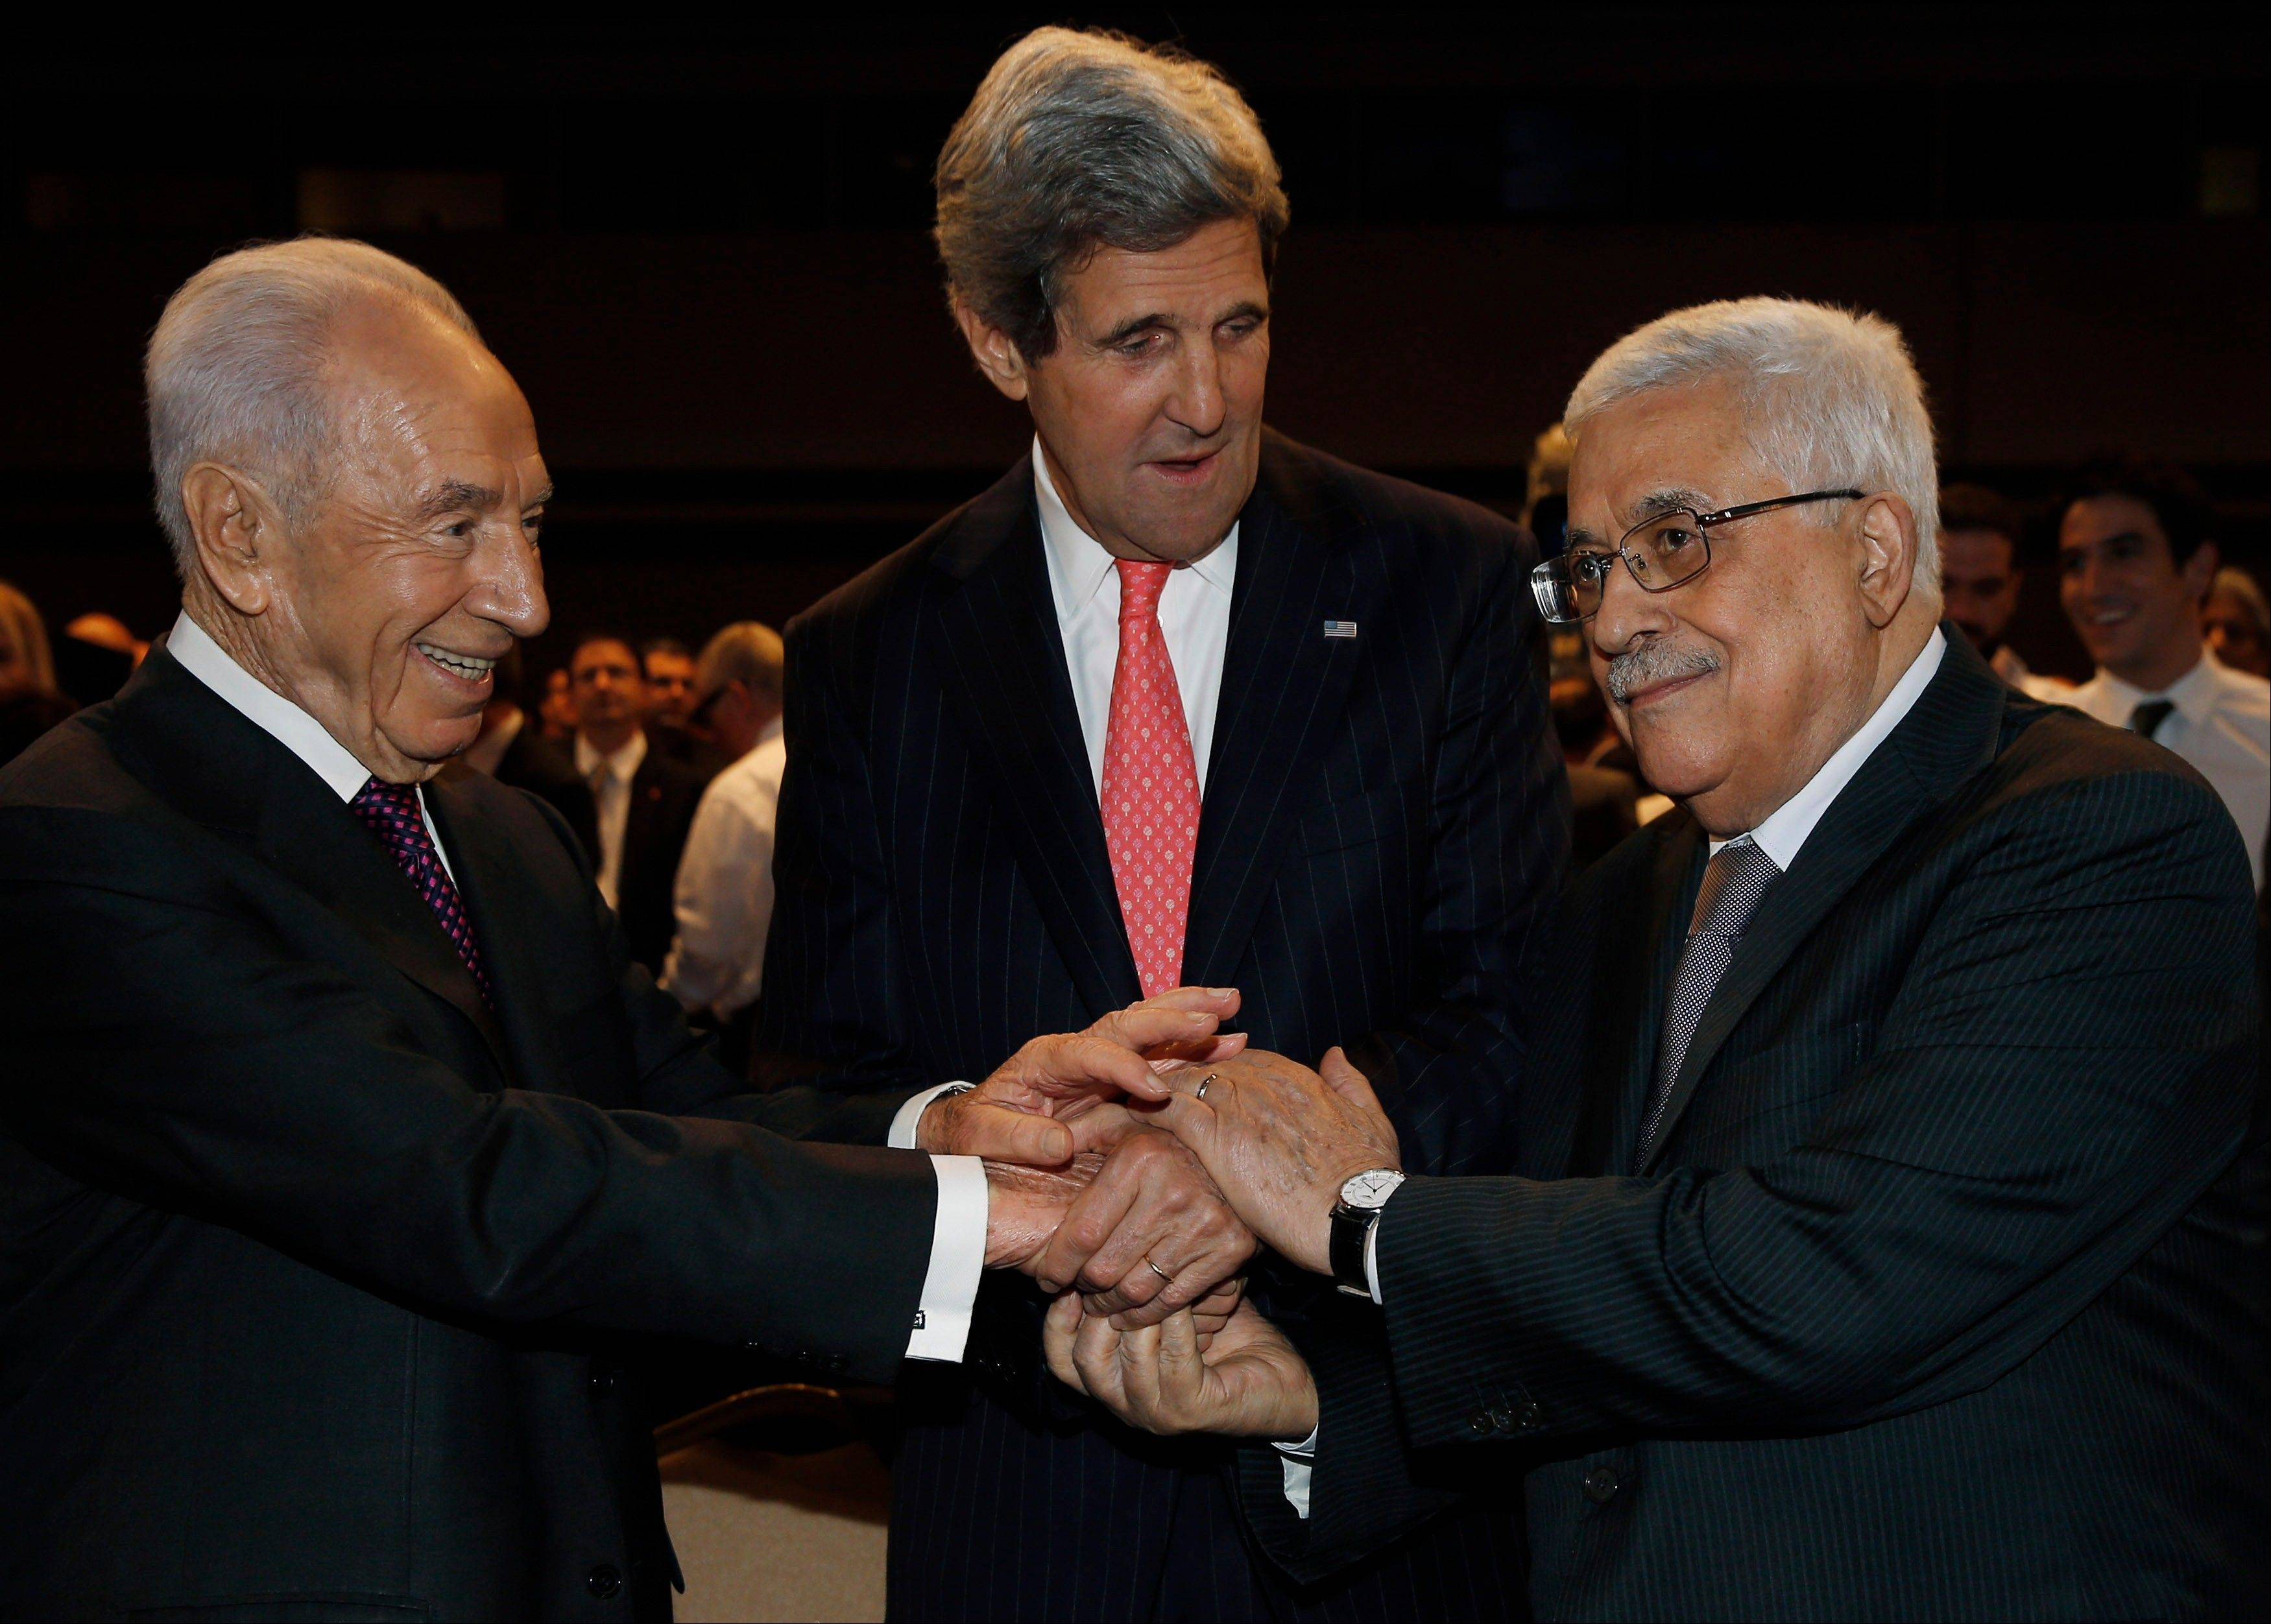 U.S. Secretary of State John Kerry, center, Israeli President Shimon Peres, right, and Palestinian President Mahmoud Abbas all shake hands during the World Economic Forum on the Middle East and North Africa at the King Hussein Convention Centre at the Dead Sea in Jordan Sunday May 26, 2013.